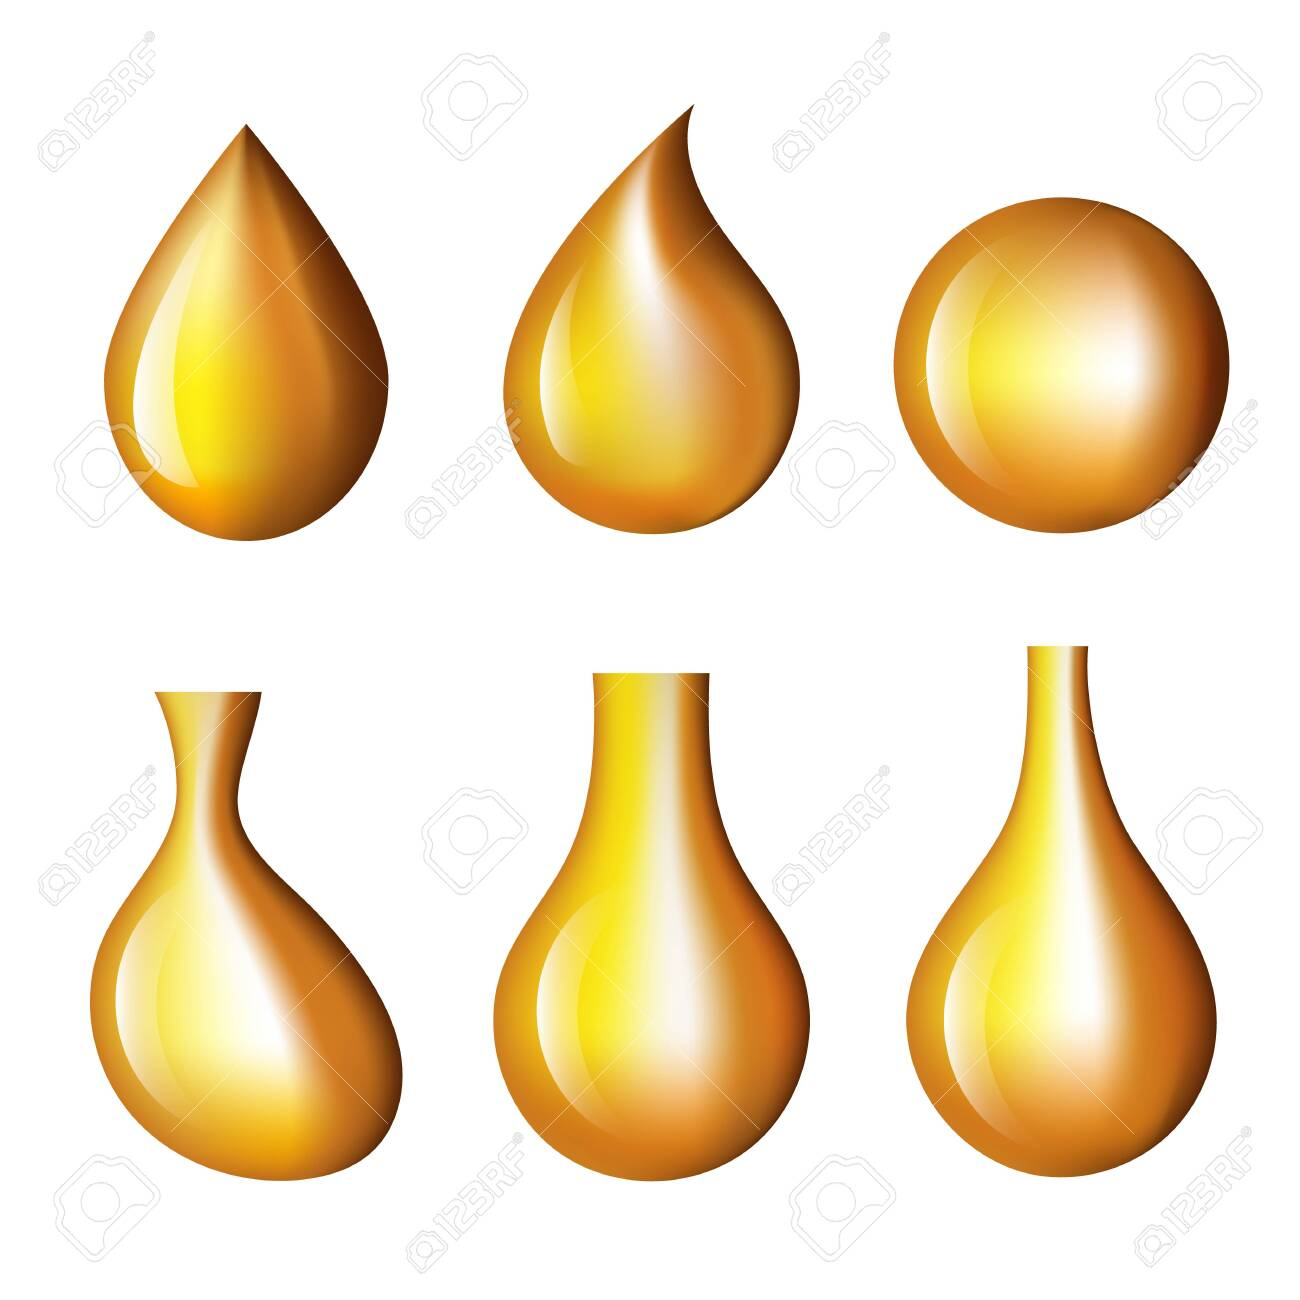 Oil drop isolated icon set. Vector graphic design isolated illustration - 131413284